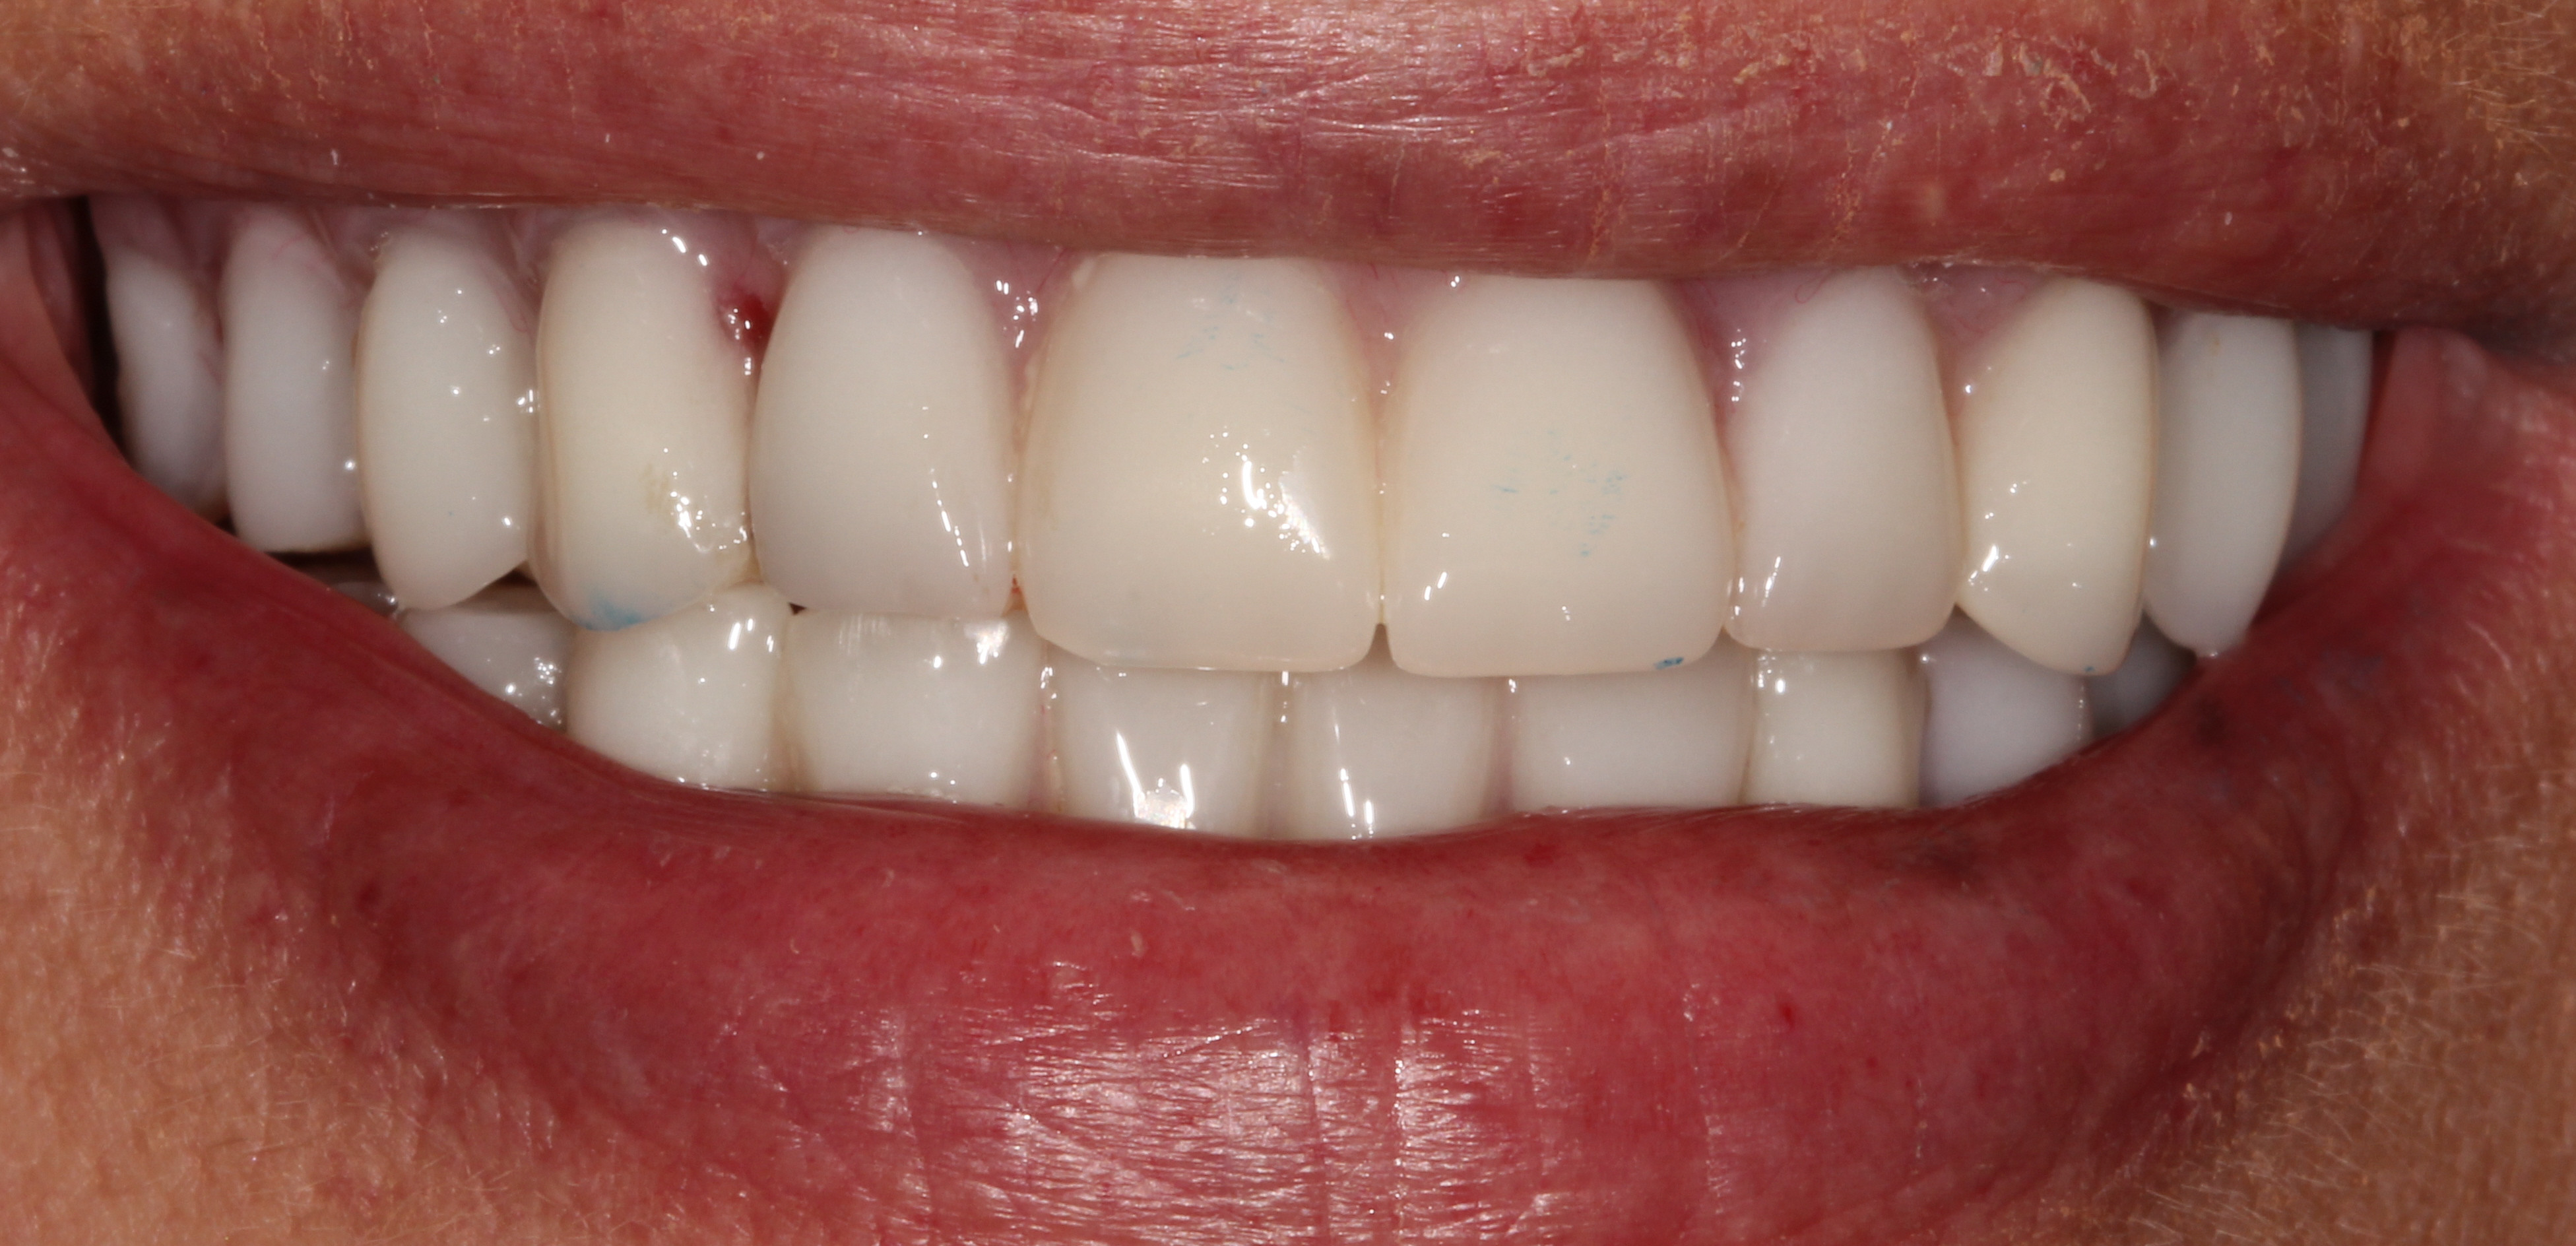 Ms Smith's temporary implant dentures